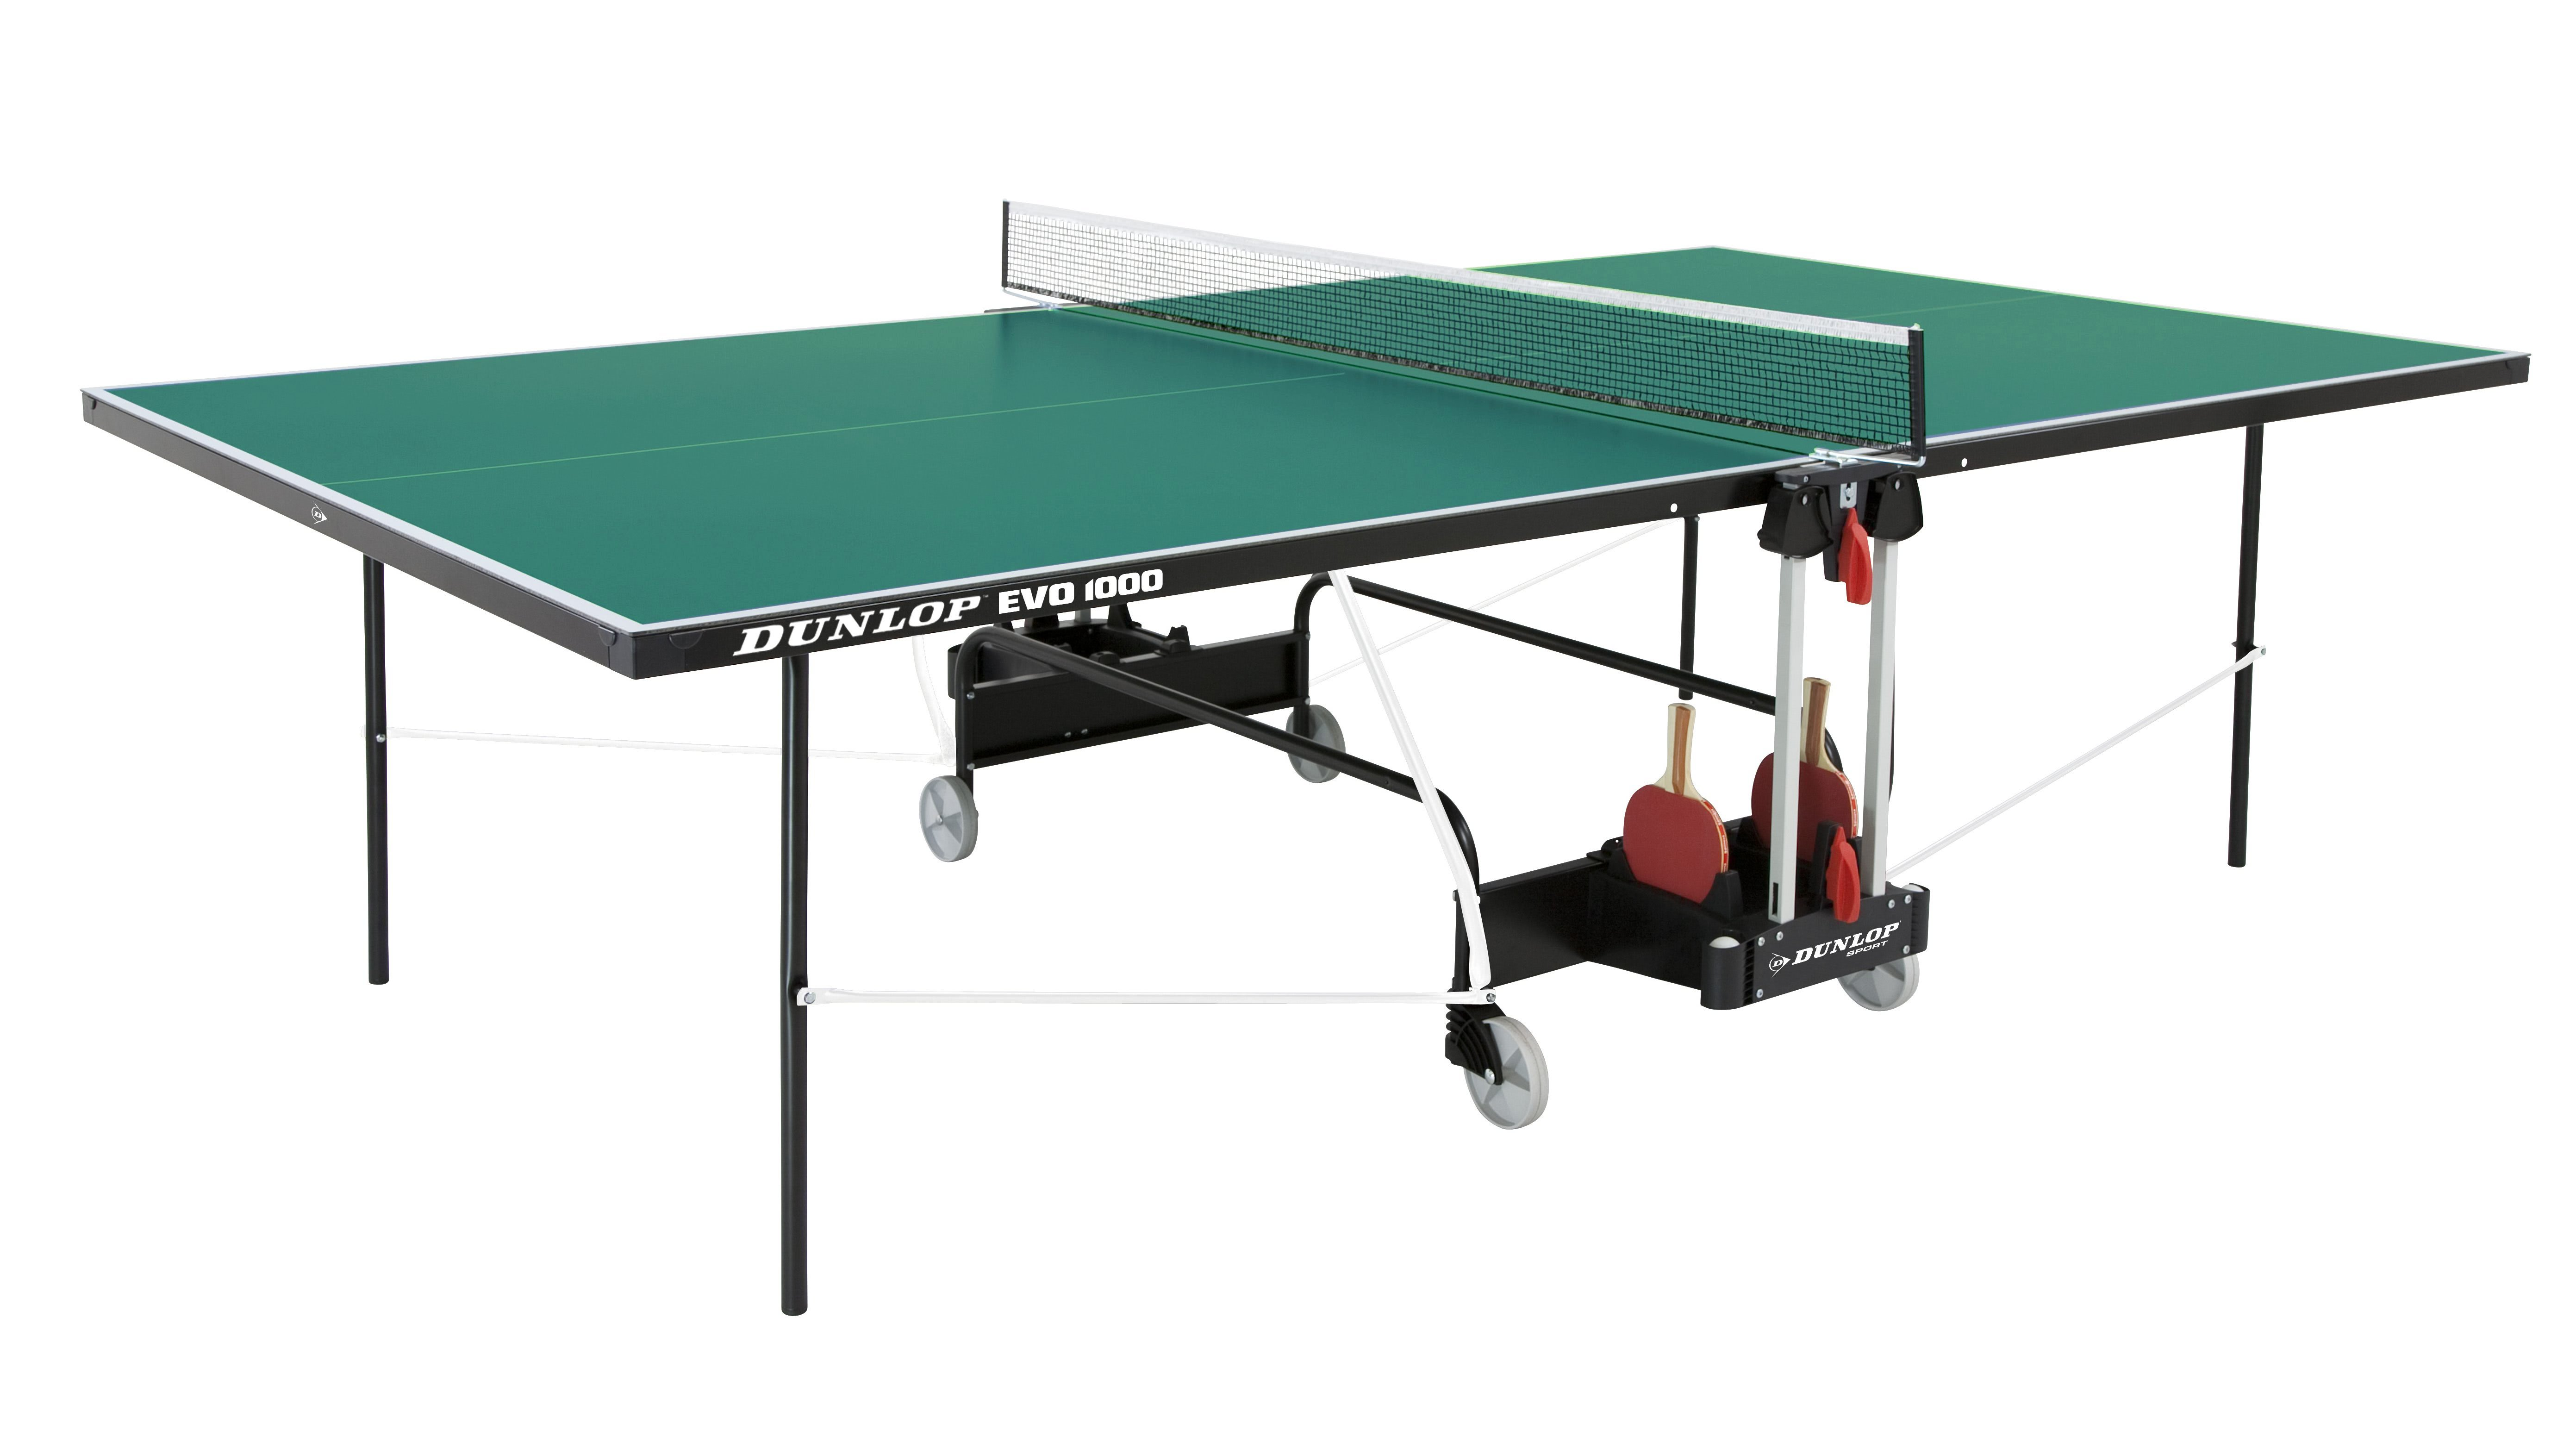 Neon Signs For Sale >> Dunlop EVO 1000 Outdoor Table Tennis | Liberty Games